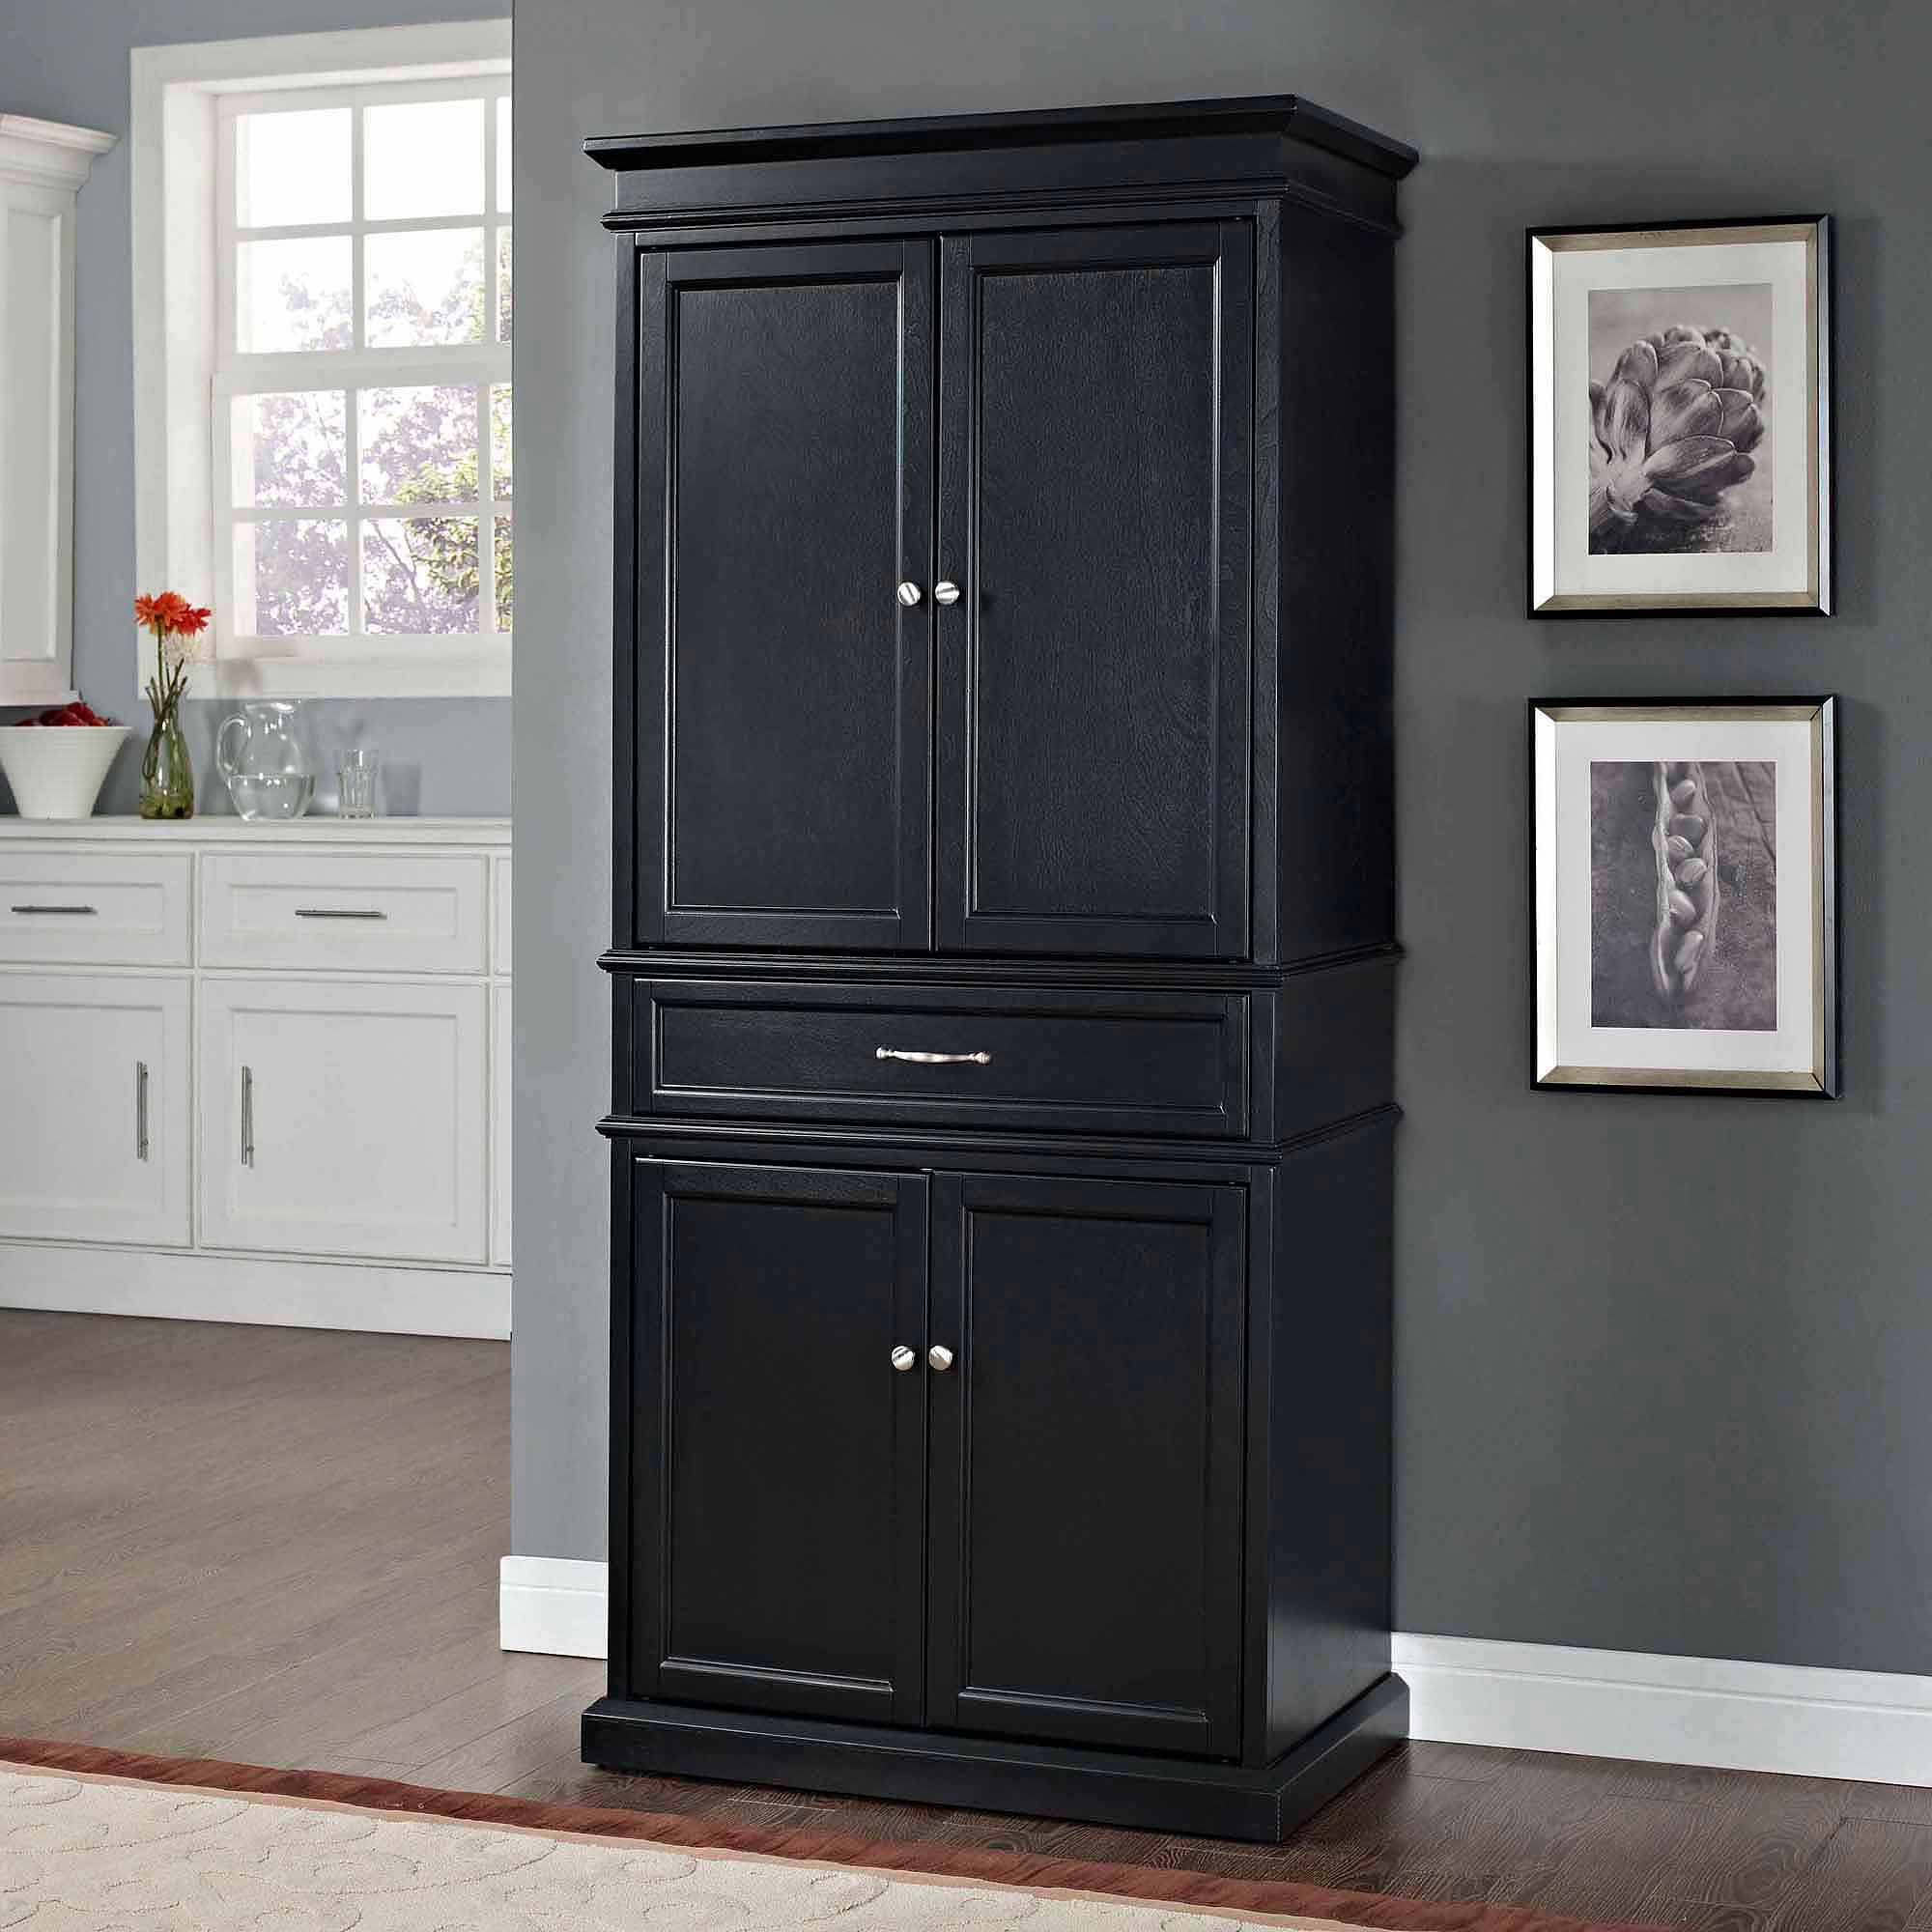 by inside ideas the on storage cabinet burger kitchen doors cabinets with jenna organization of for